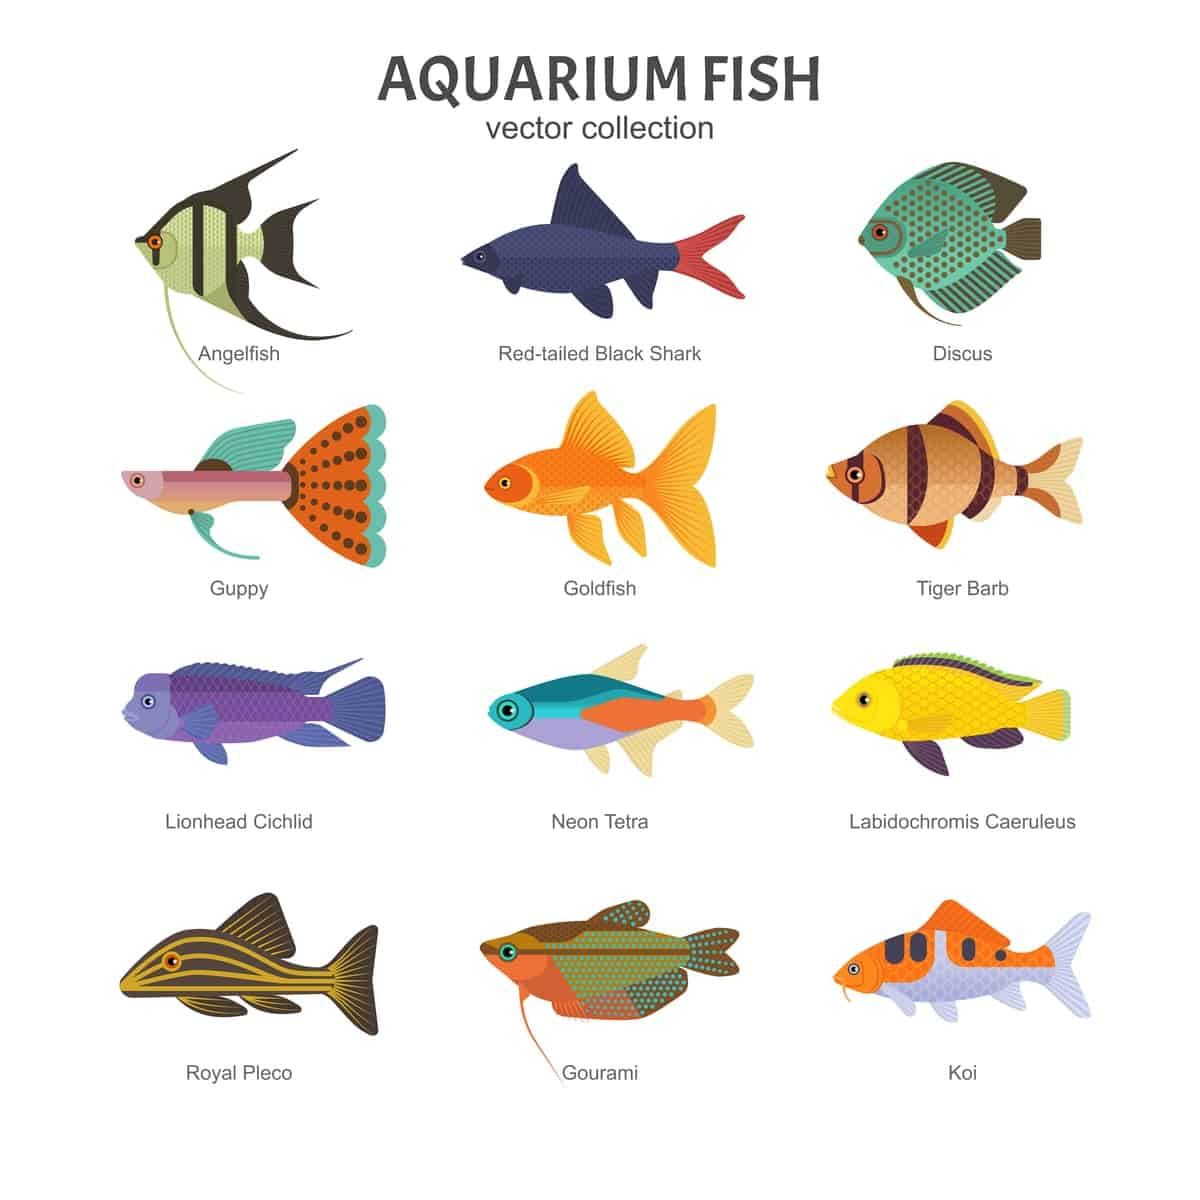 18 Por Types Of Aquarium Fish